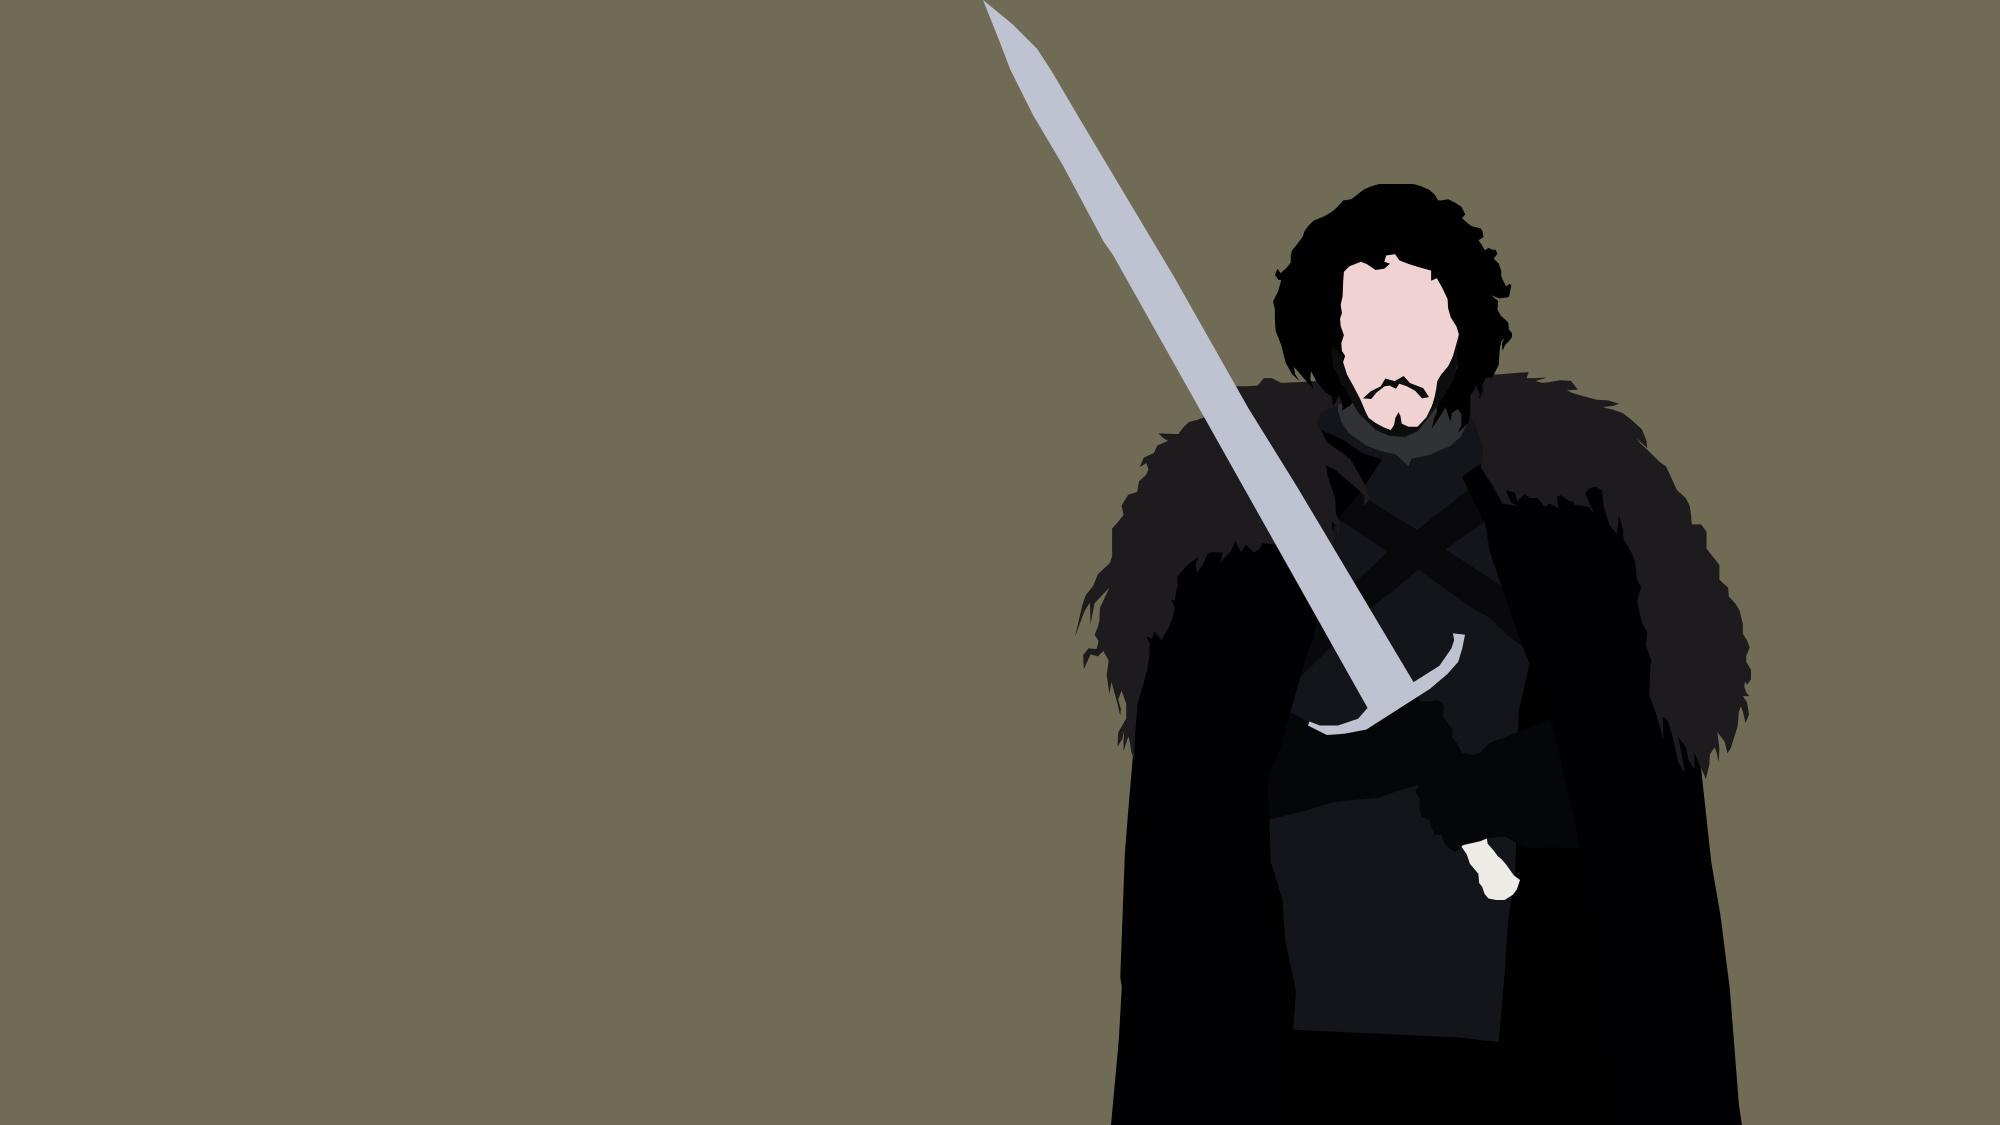 Game Of Thrones Minimalist Wallpaper: Jon Snow From Game Of Thrones By Reverendtundra On DeviantArt